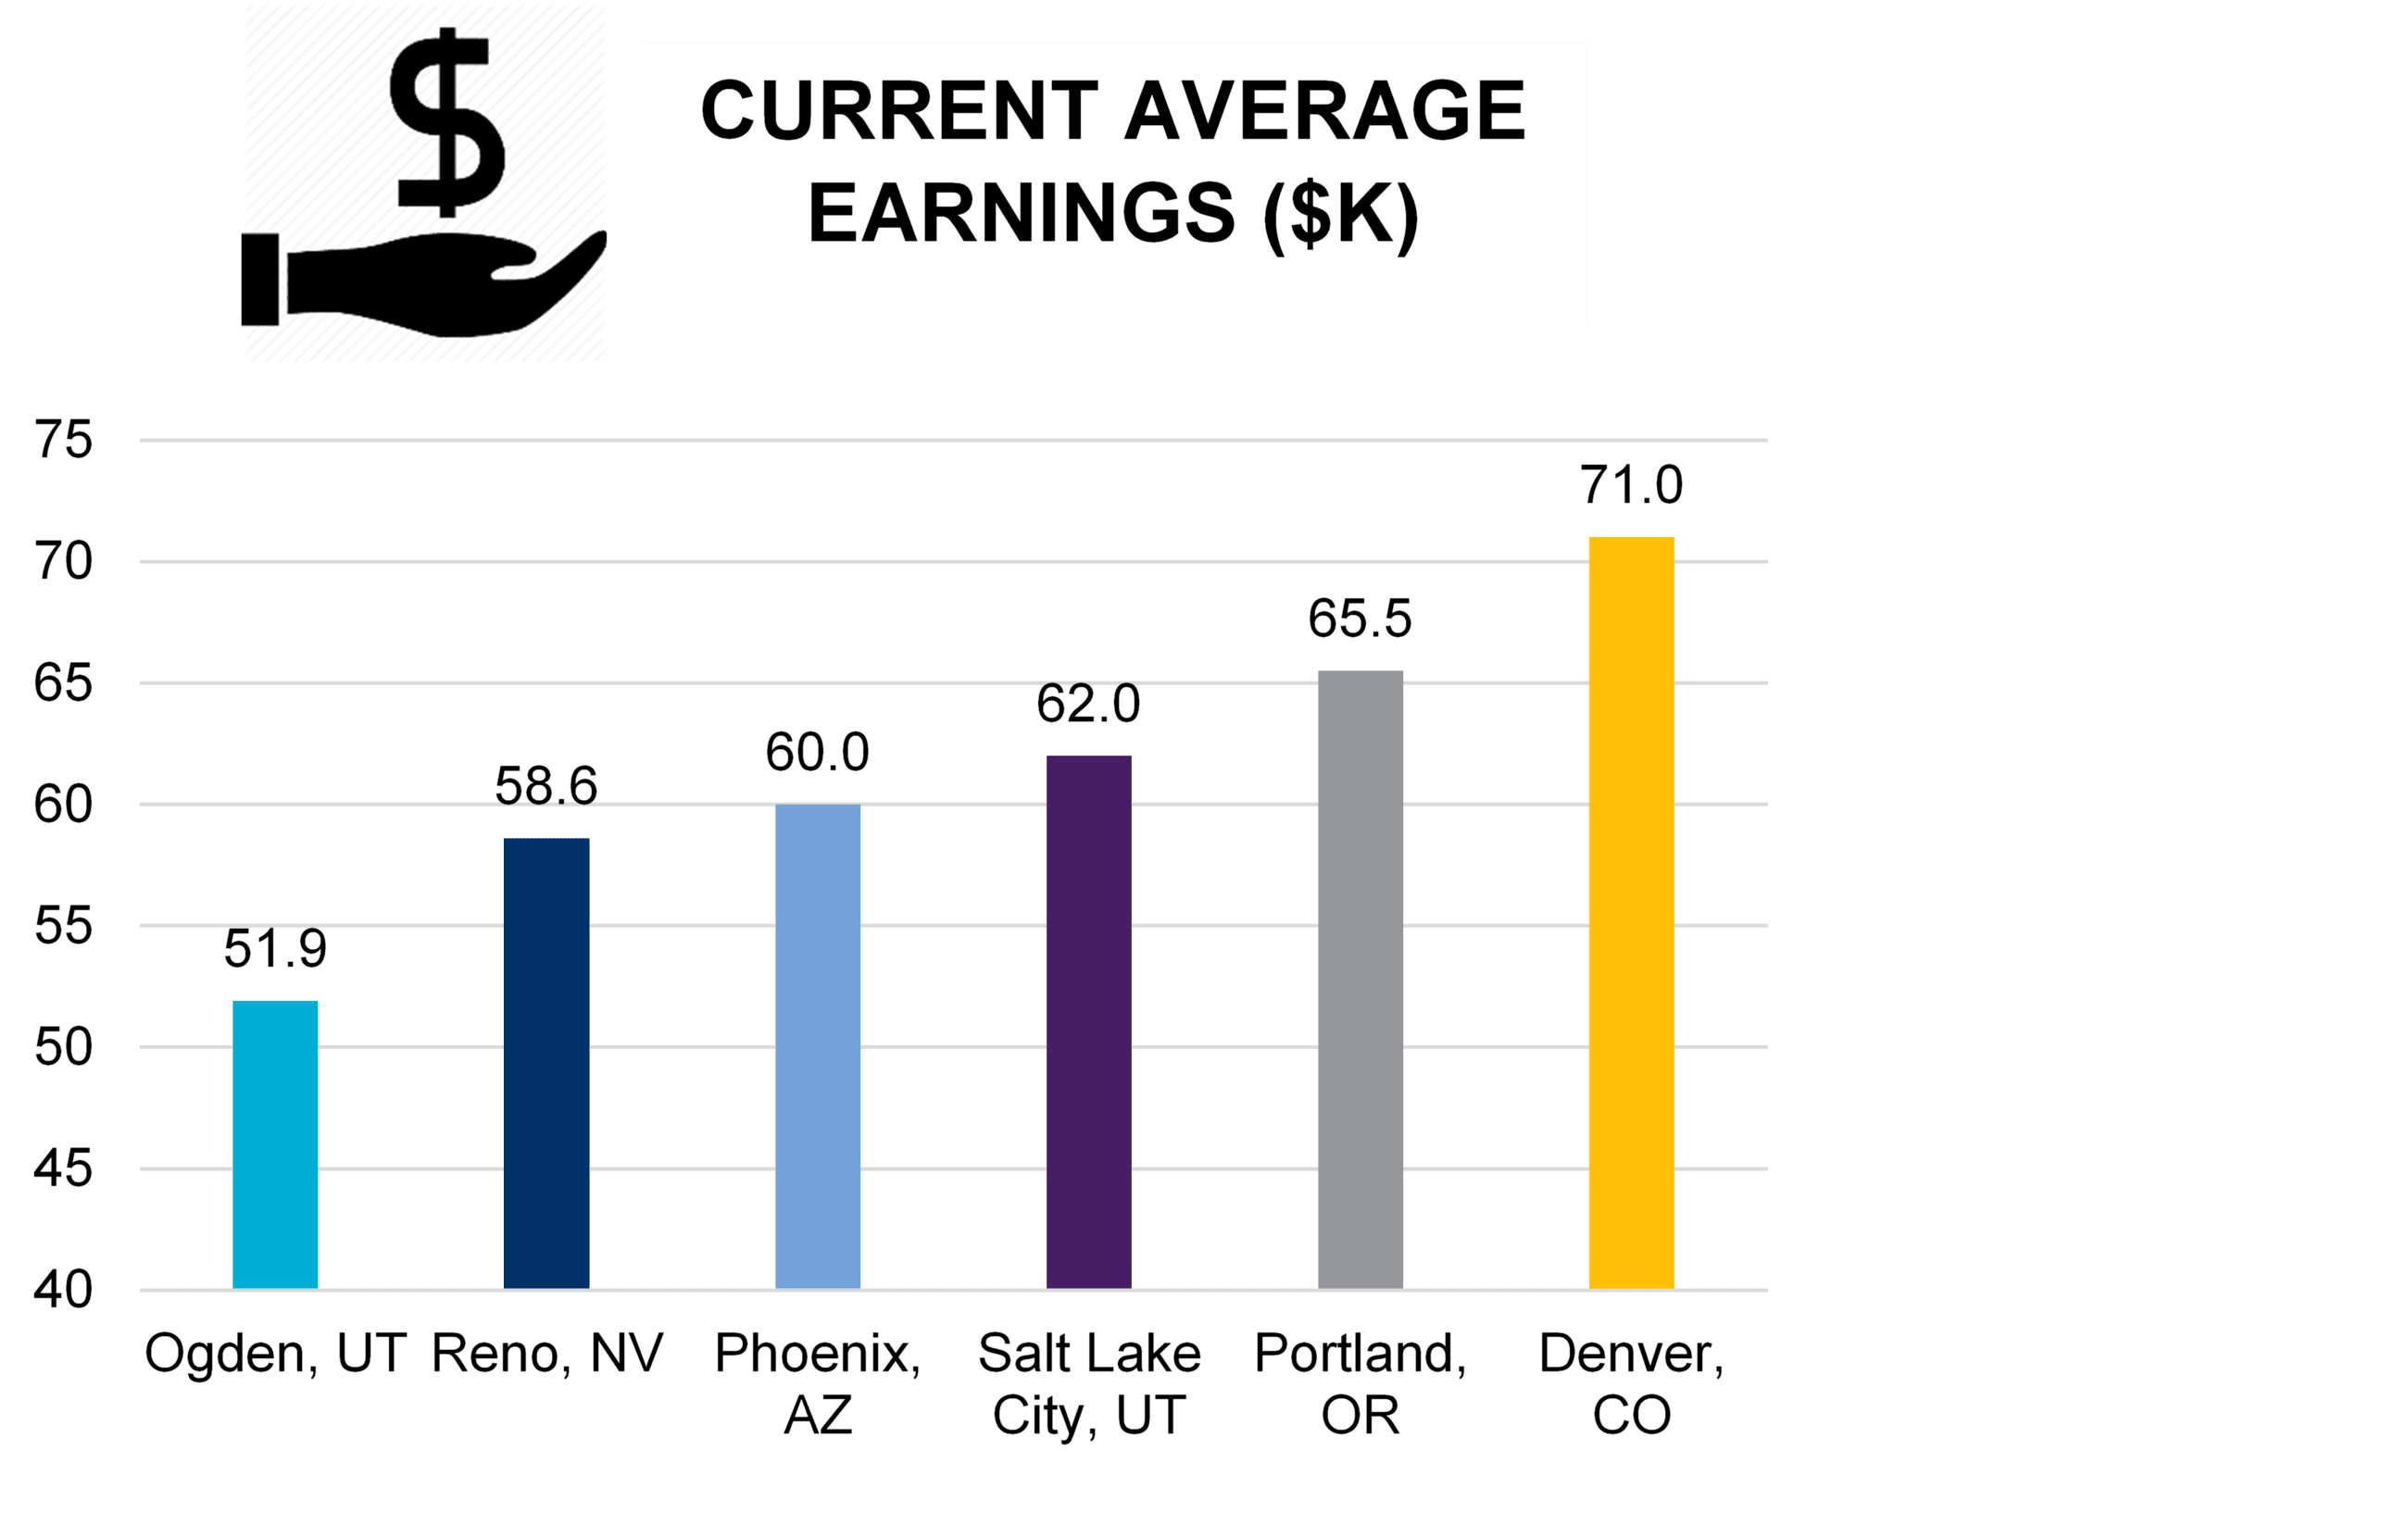 Current Average Earnings (PNG)